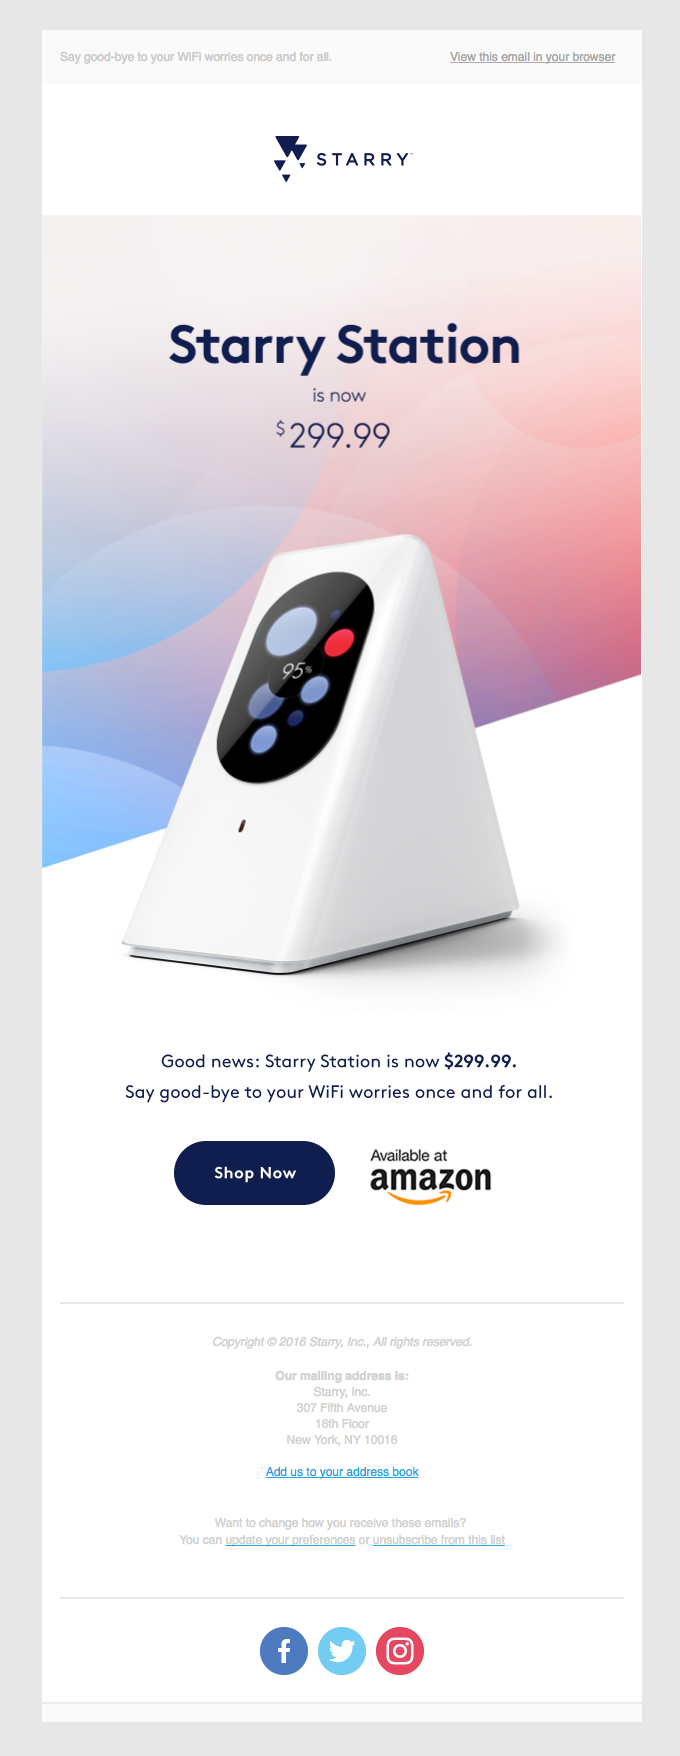 Starry Station is now $299